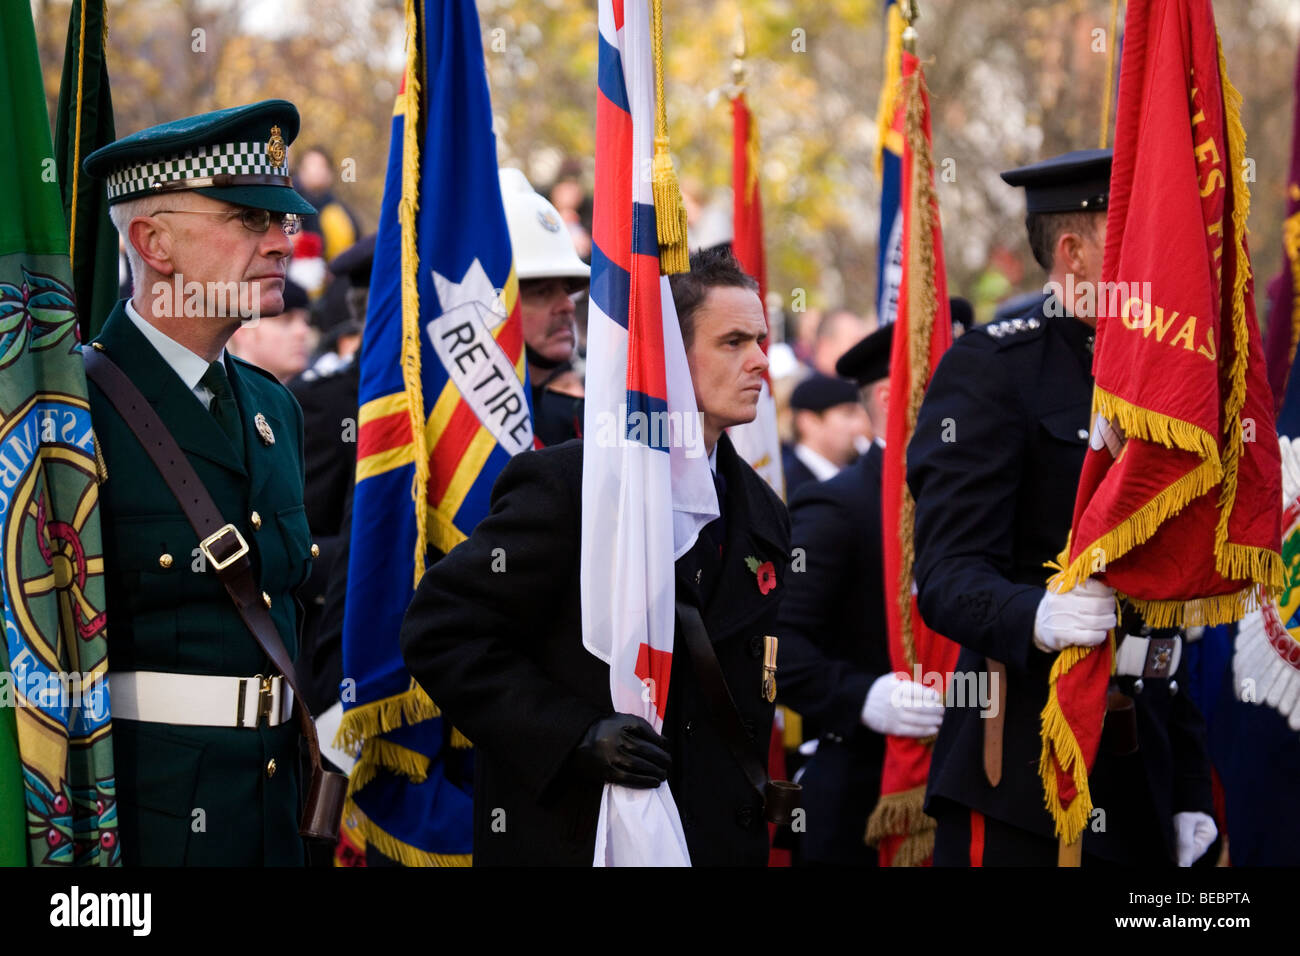 Members of the British services hold their colours at Sunderland Cenotaph during the Remembrance Day ceremony. - Stock Image